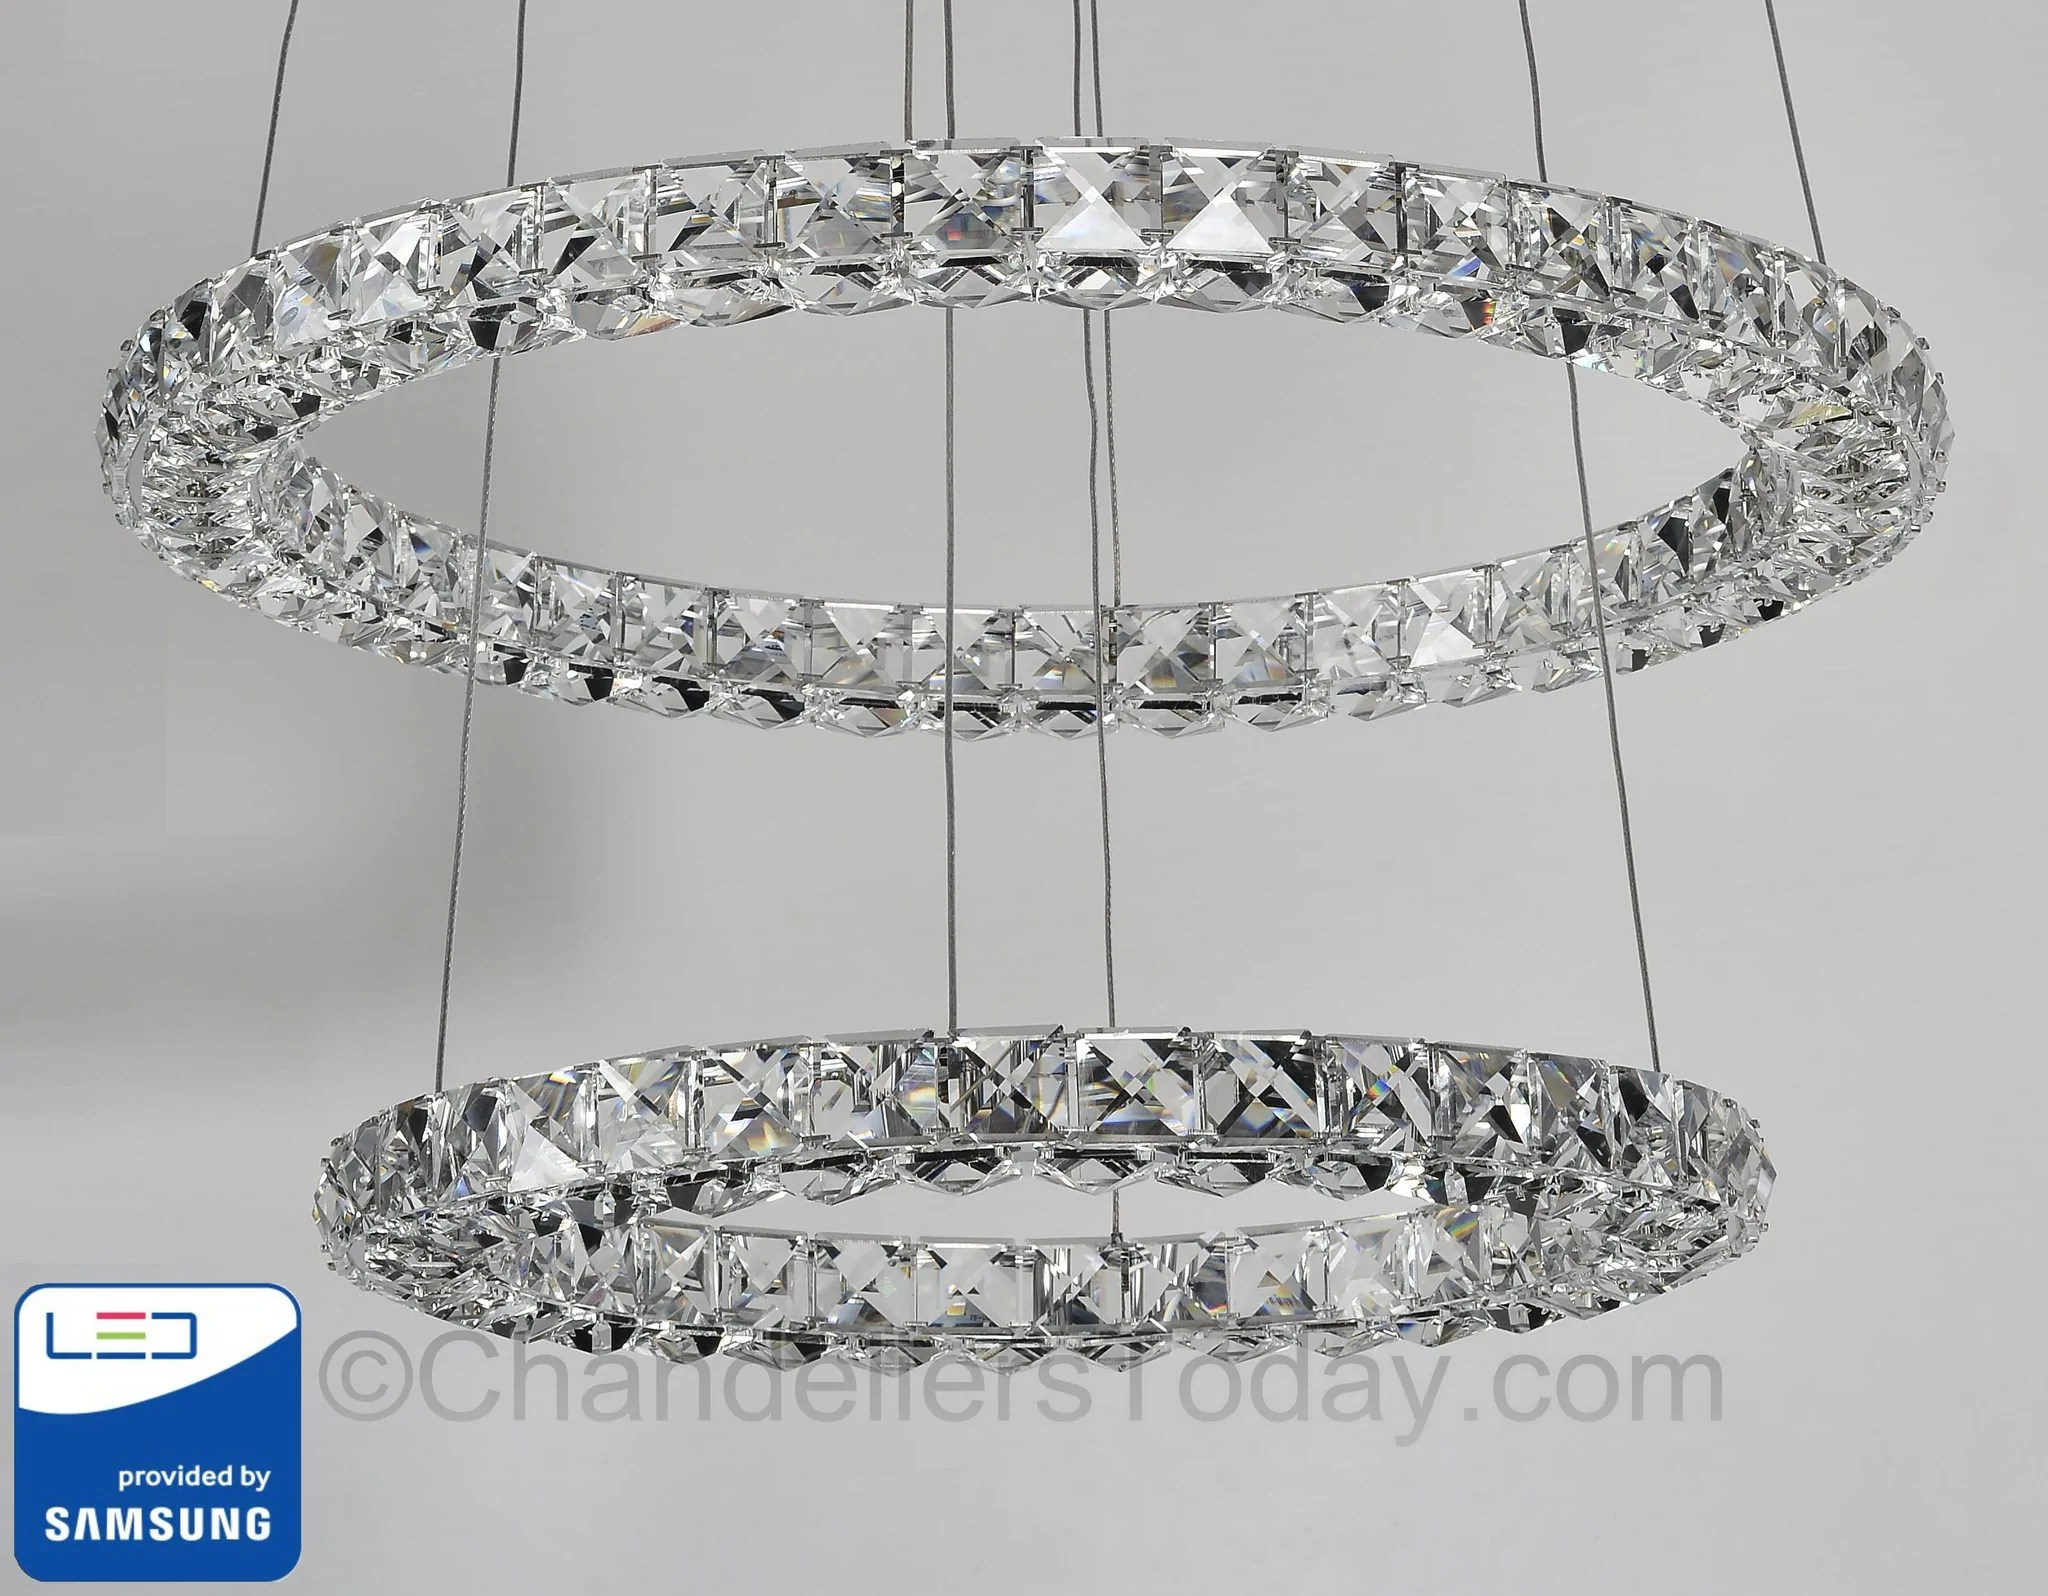 Led Chandelier Miami Samsung Led Chandelier Double Ring Halo Mia R 21 16